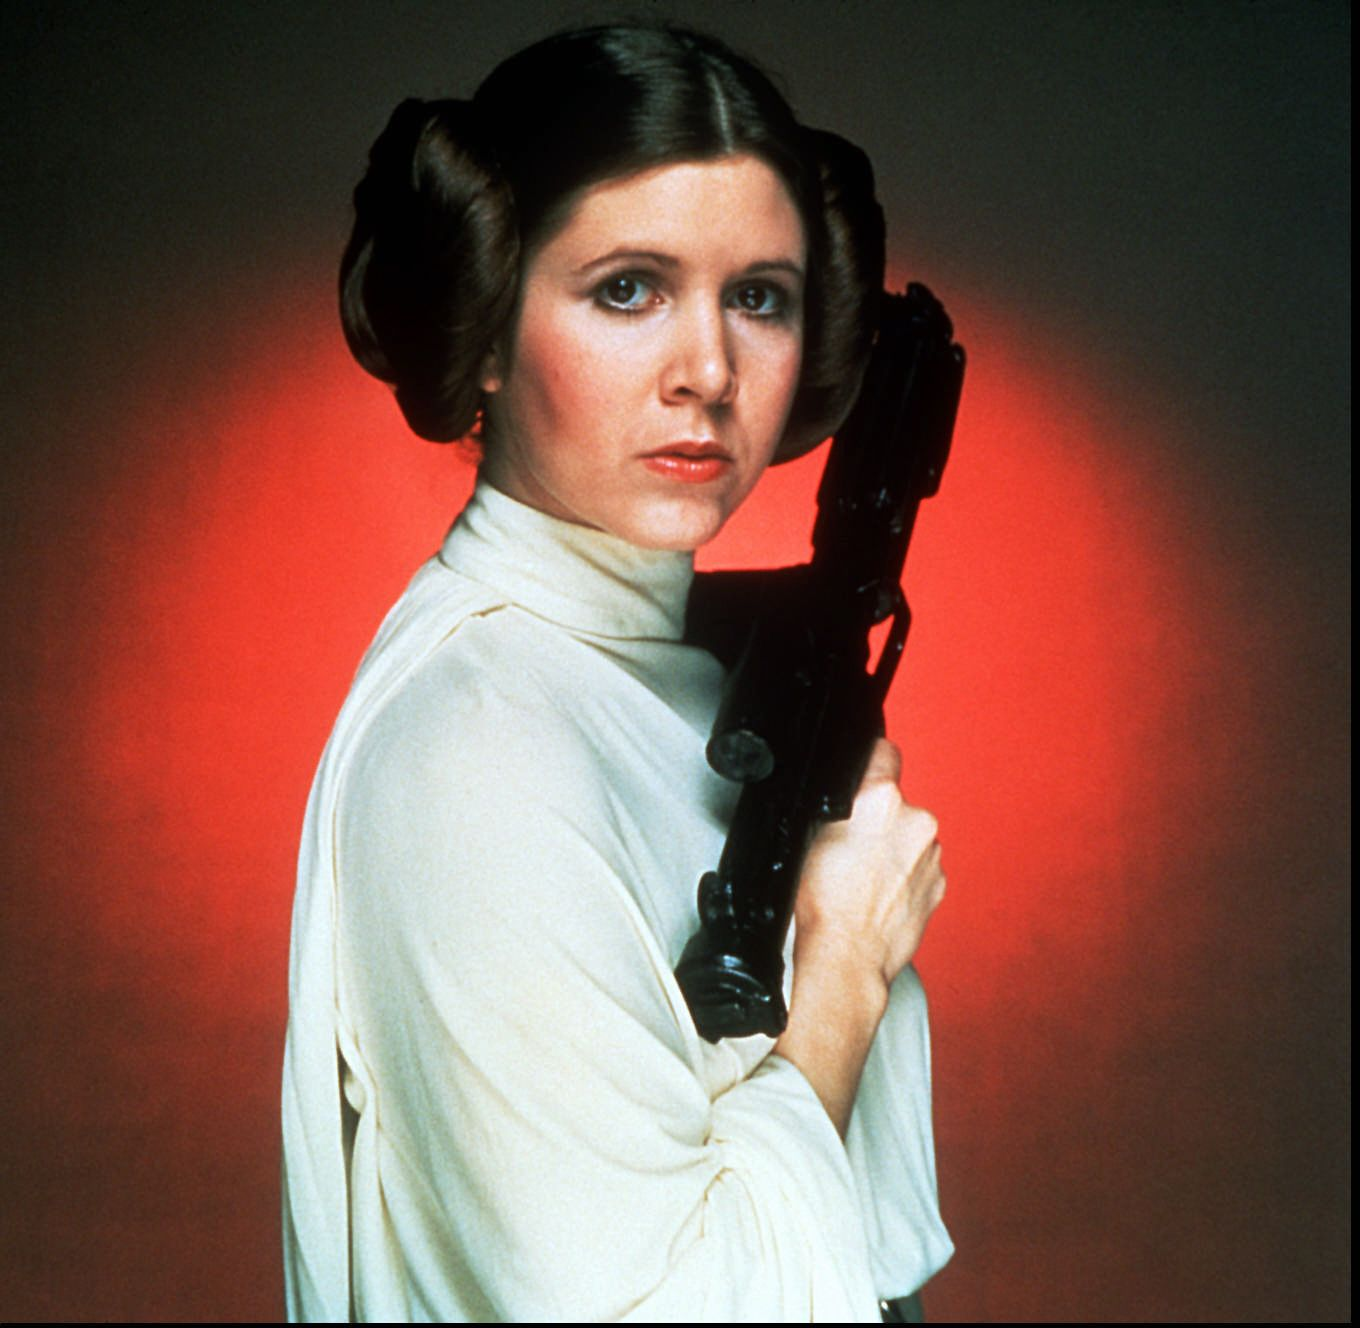 Carrie Fisher's family is 'thrilled' Leia will appear in 'Star Wars: Episode IX'